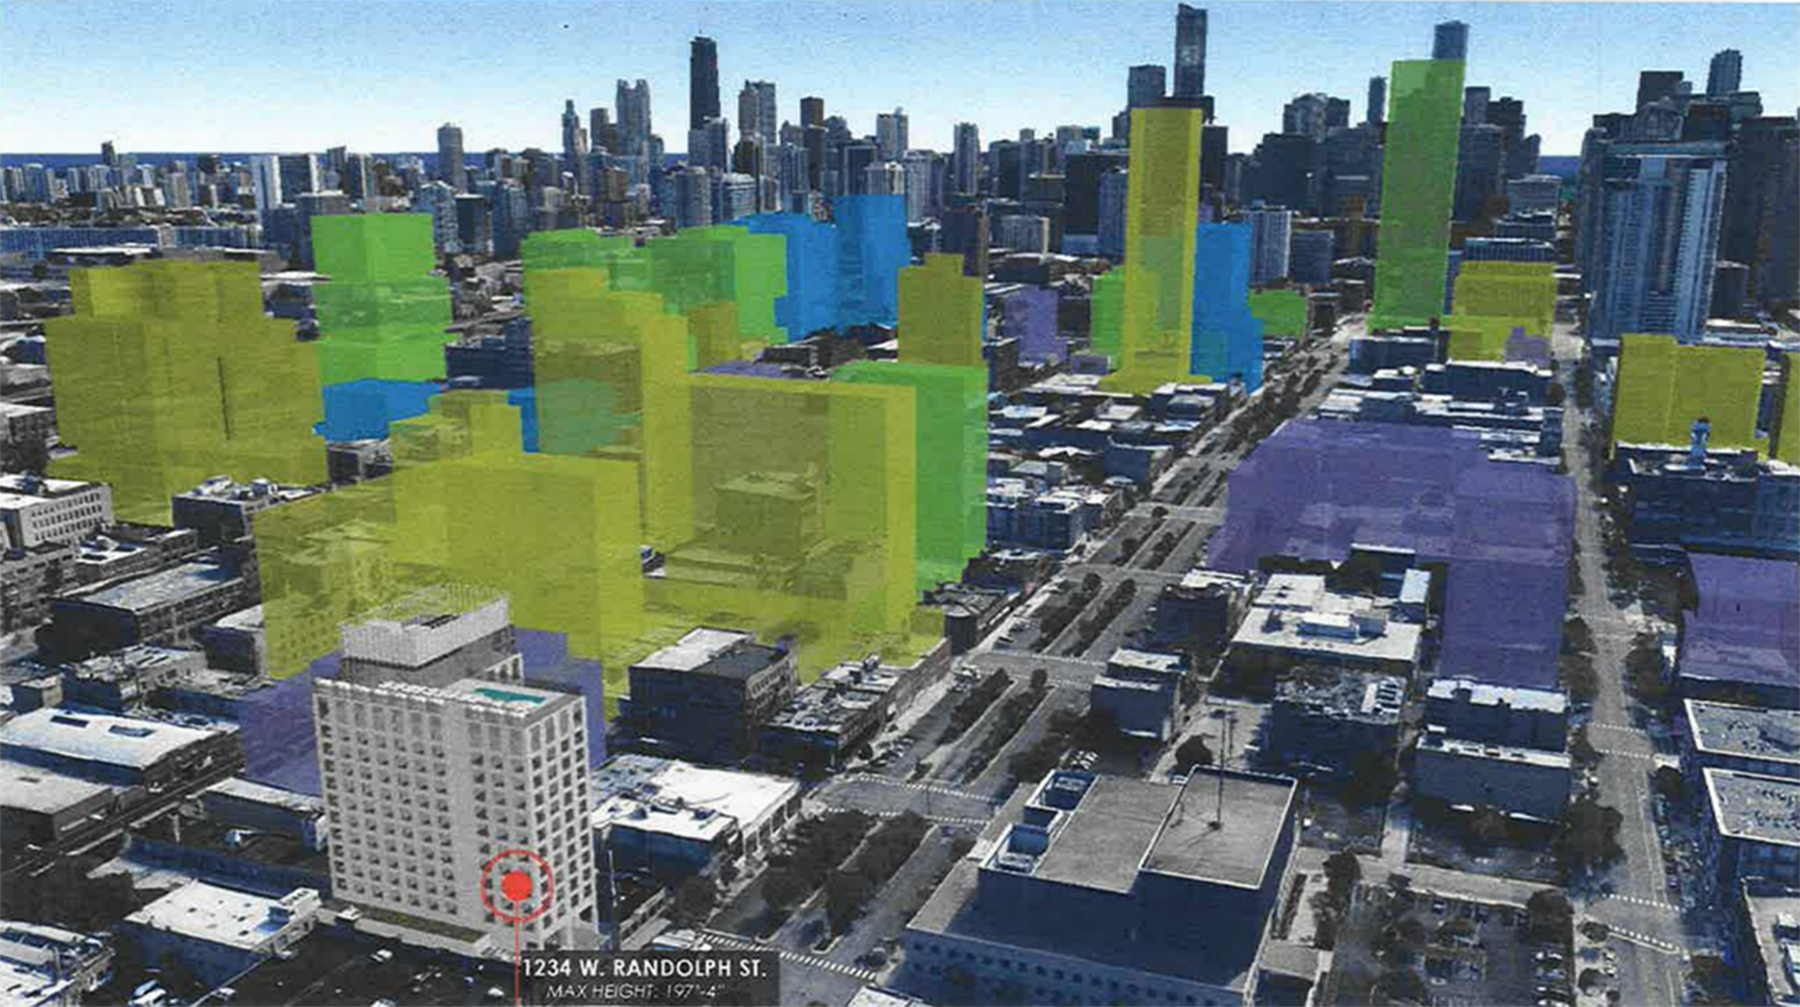 A rendering looking northeast from the proposed 1234 W. Randolph St. project (with red dot in the foreground). Buildings in yellow are proposed, green are approved and blue are under construction.